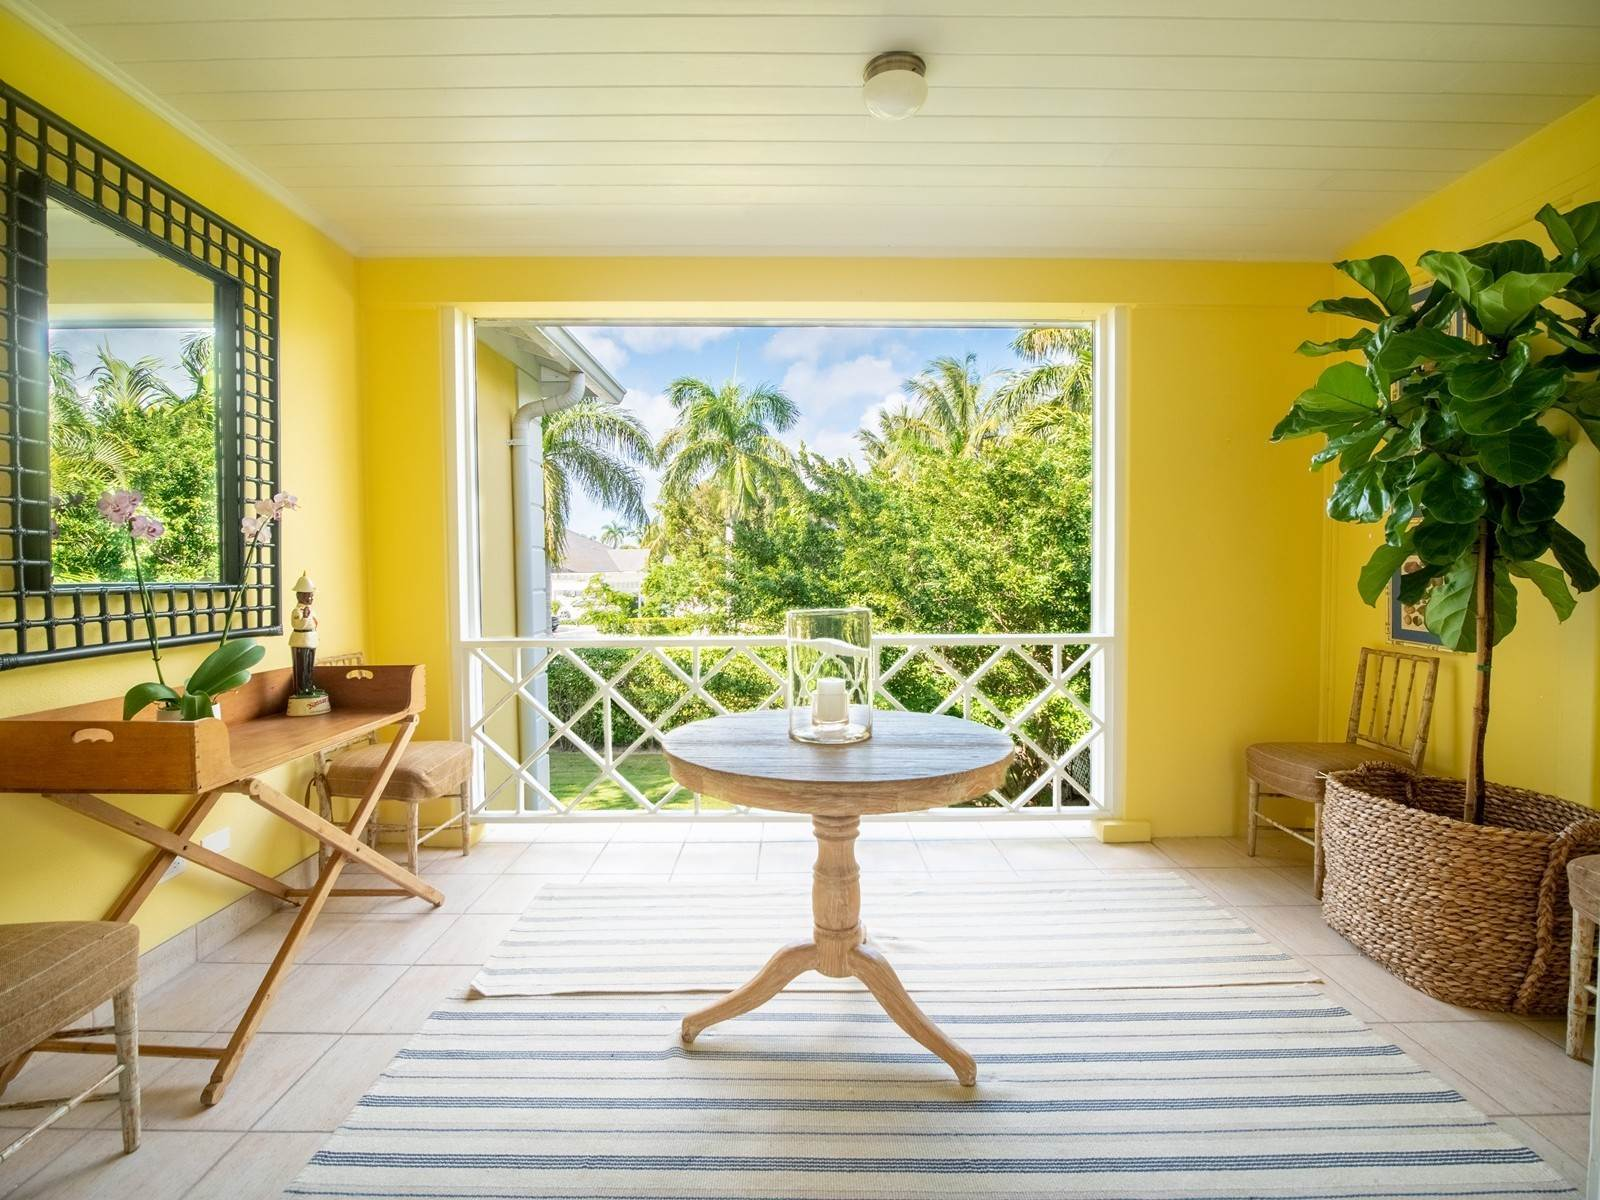 Co-op / Condo for Sale at Immaculate Two Bedroom Lyford Cay Apartment - MLS 43073 Lyford Cay, Nassau And Paradise Island, Bahamas